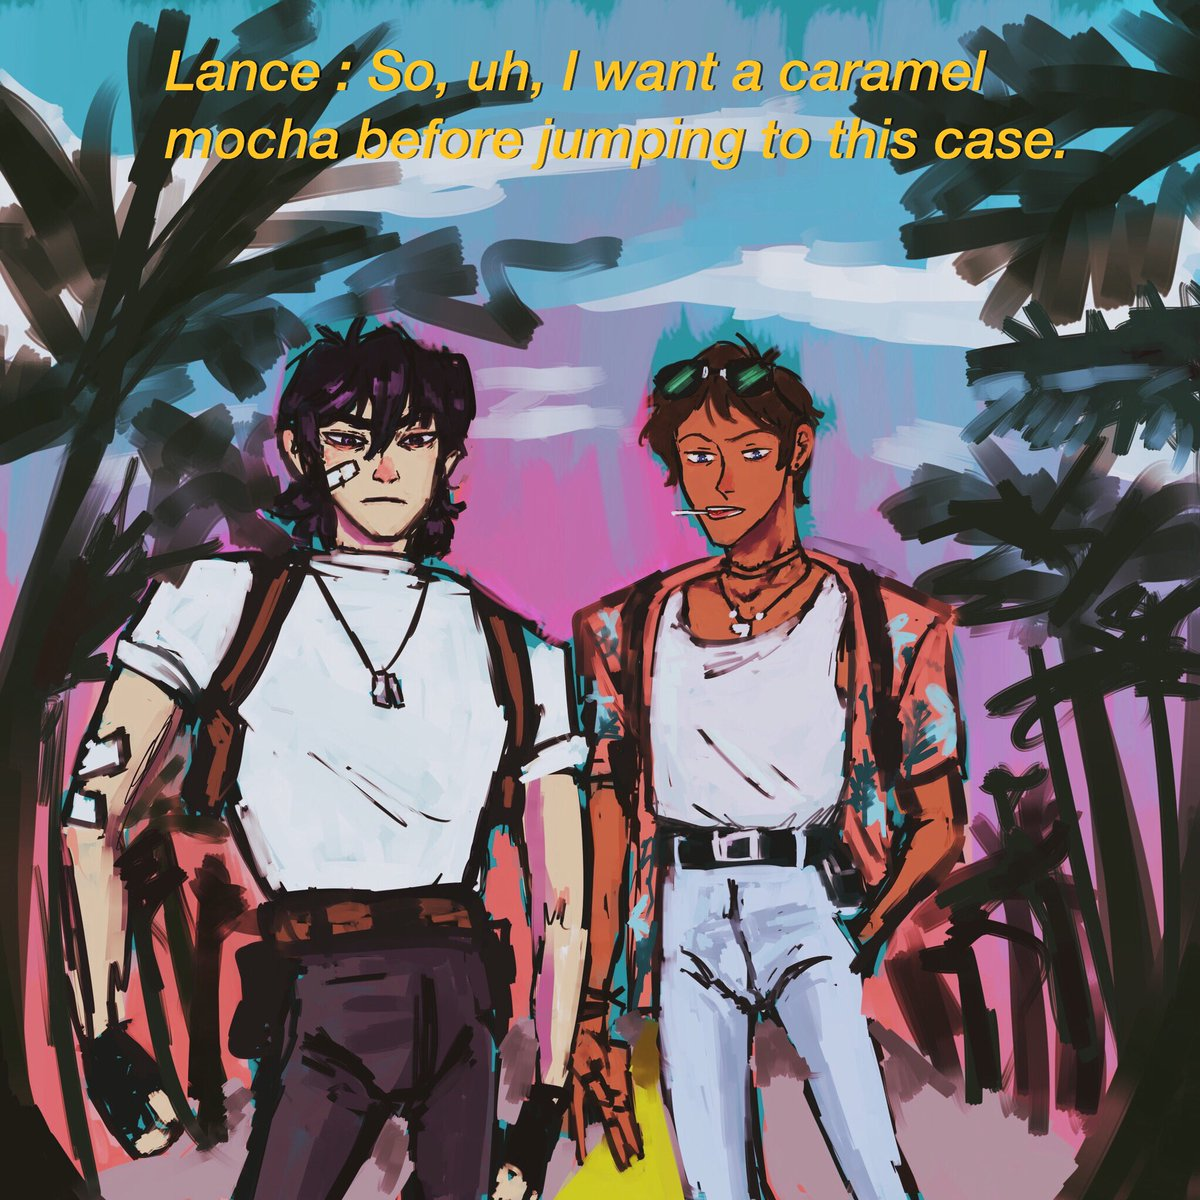 hhh i got back on this very old policemen klance au (takes place in 80s in Miami or sumn) n it was a good idea why did I even forget about it   #klance #klancefanart<br>http://pic.twitter.com/stIS24grfy